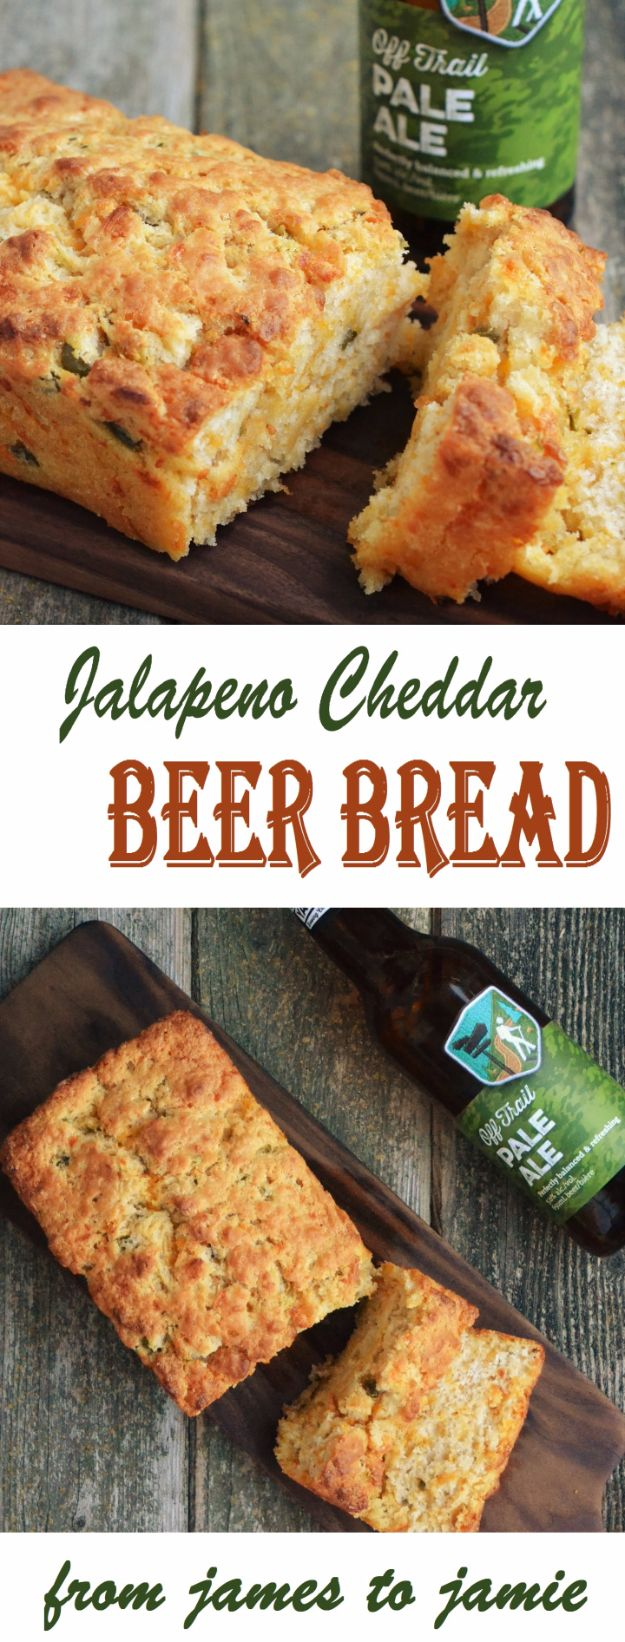 Best Recipes Made With Beer - Jalapeno Cheddar Beer Bread - Easy Dinner, Lunch and Snack Recipe Ideas Made With Beer - Food for the Slow Cooker and Crockpot, Meat and Chicken Dishes, Appetizers, Homemade Pretzels, Summer BBQ Sauces and PArty Food Ideas http://diyjoy.com/best-recipes-made-with-beer